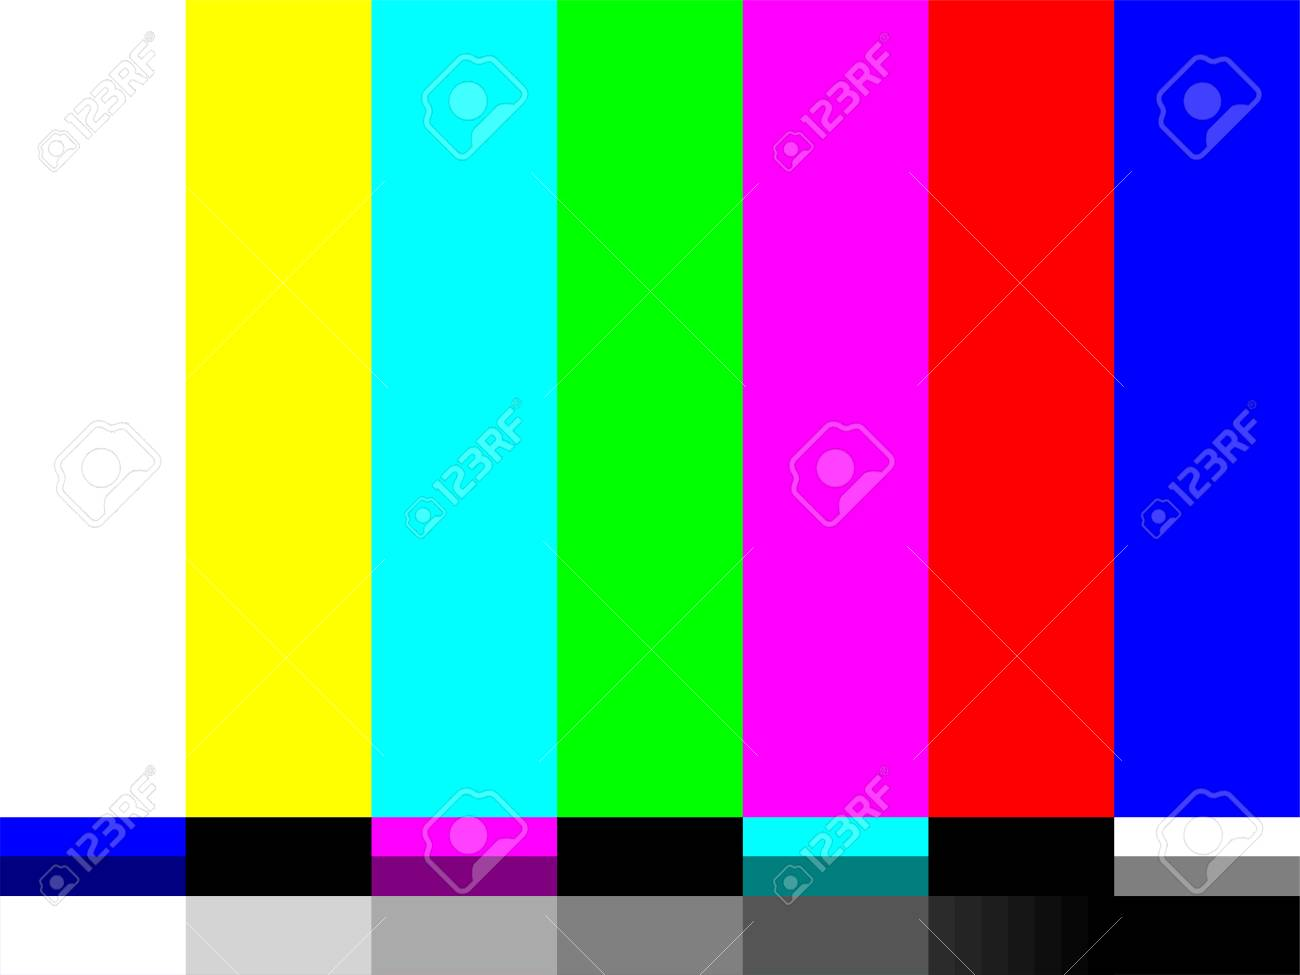 No signal TV color test card of vector bar pattern - 111902588